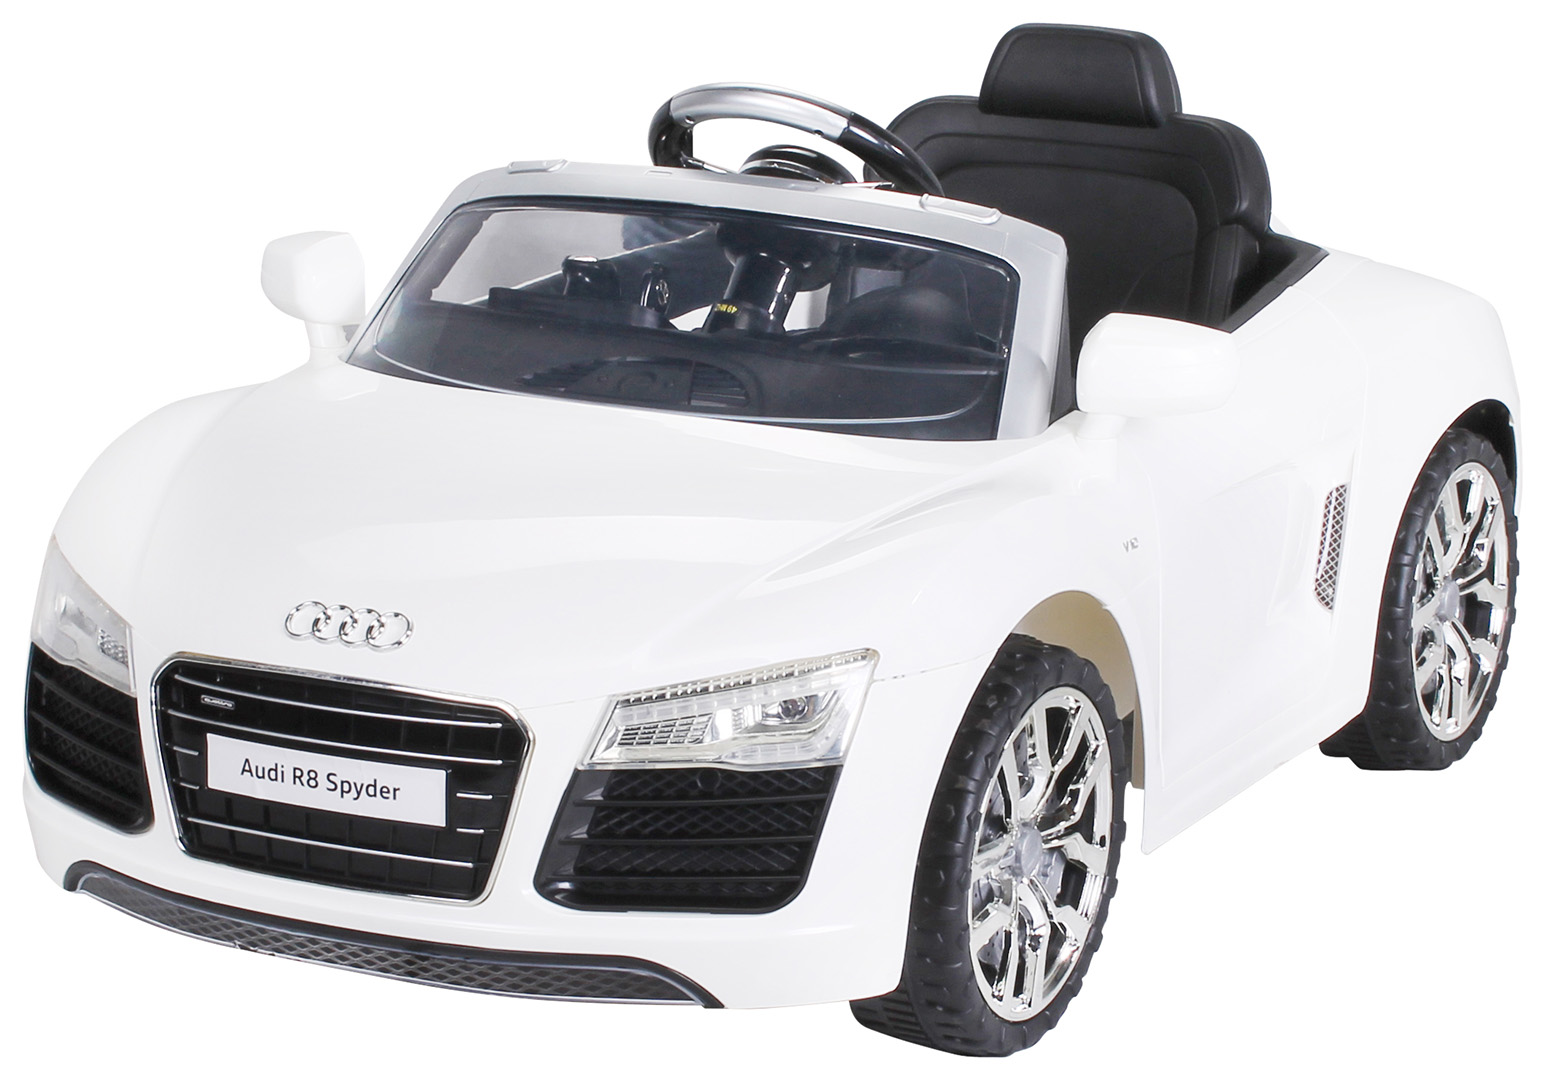 kinder elektroauto audi r8 spyder lizenziert 2x35 watt. Black Bedroom Furniture Sets. Home Design Ideas